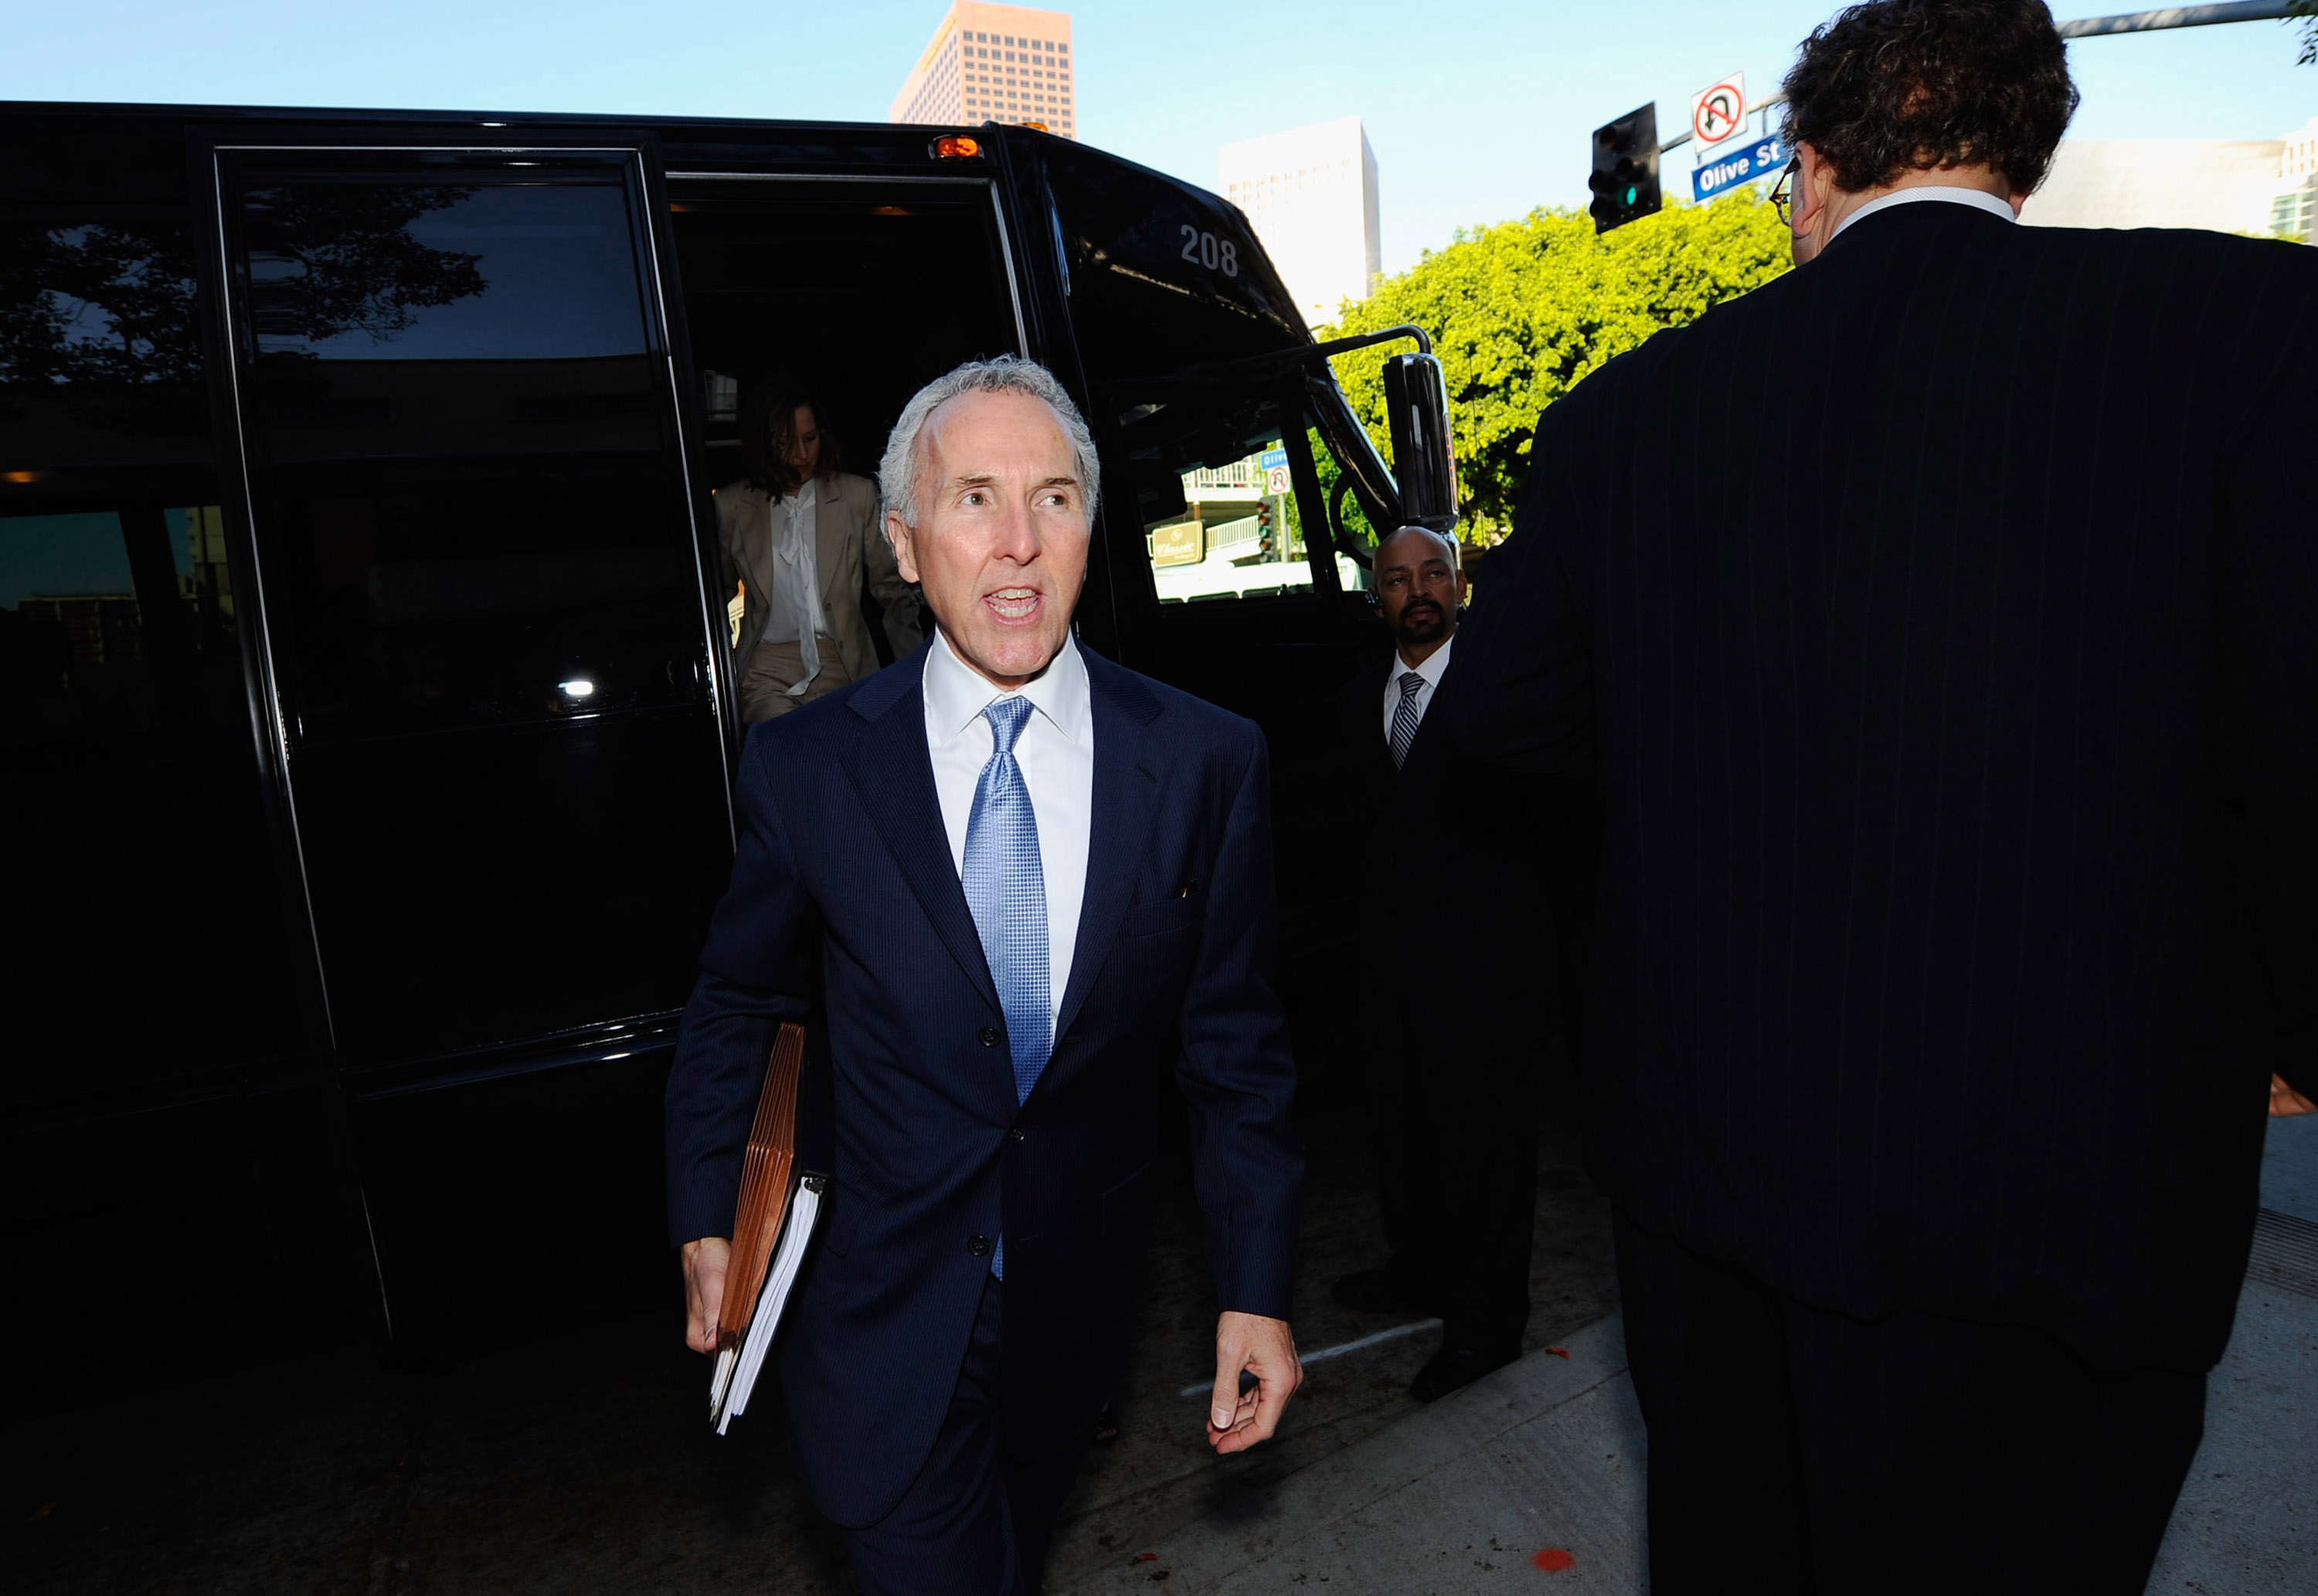 LOS ANGELES, CA - AUGUST 31:  Frank McCourt, owner of the Los Angeles Dodgers, arrives at Los Angeles County Superior Court for day two of a non-jury divorce trial on August 31, 2010 in Los Angeles, California. The trial, being presided over by Judge Scot